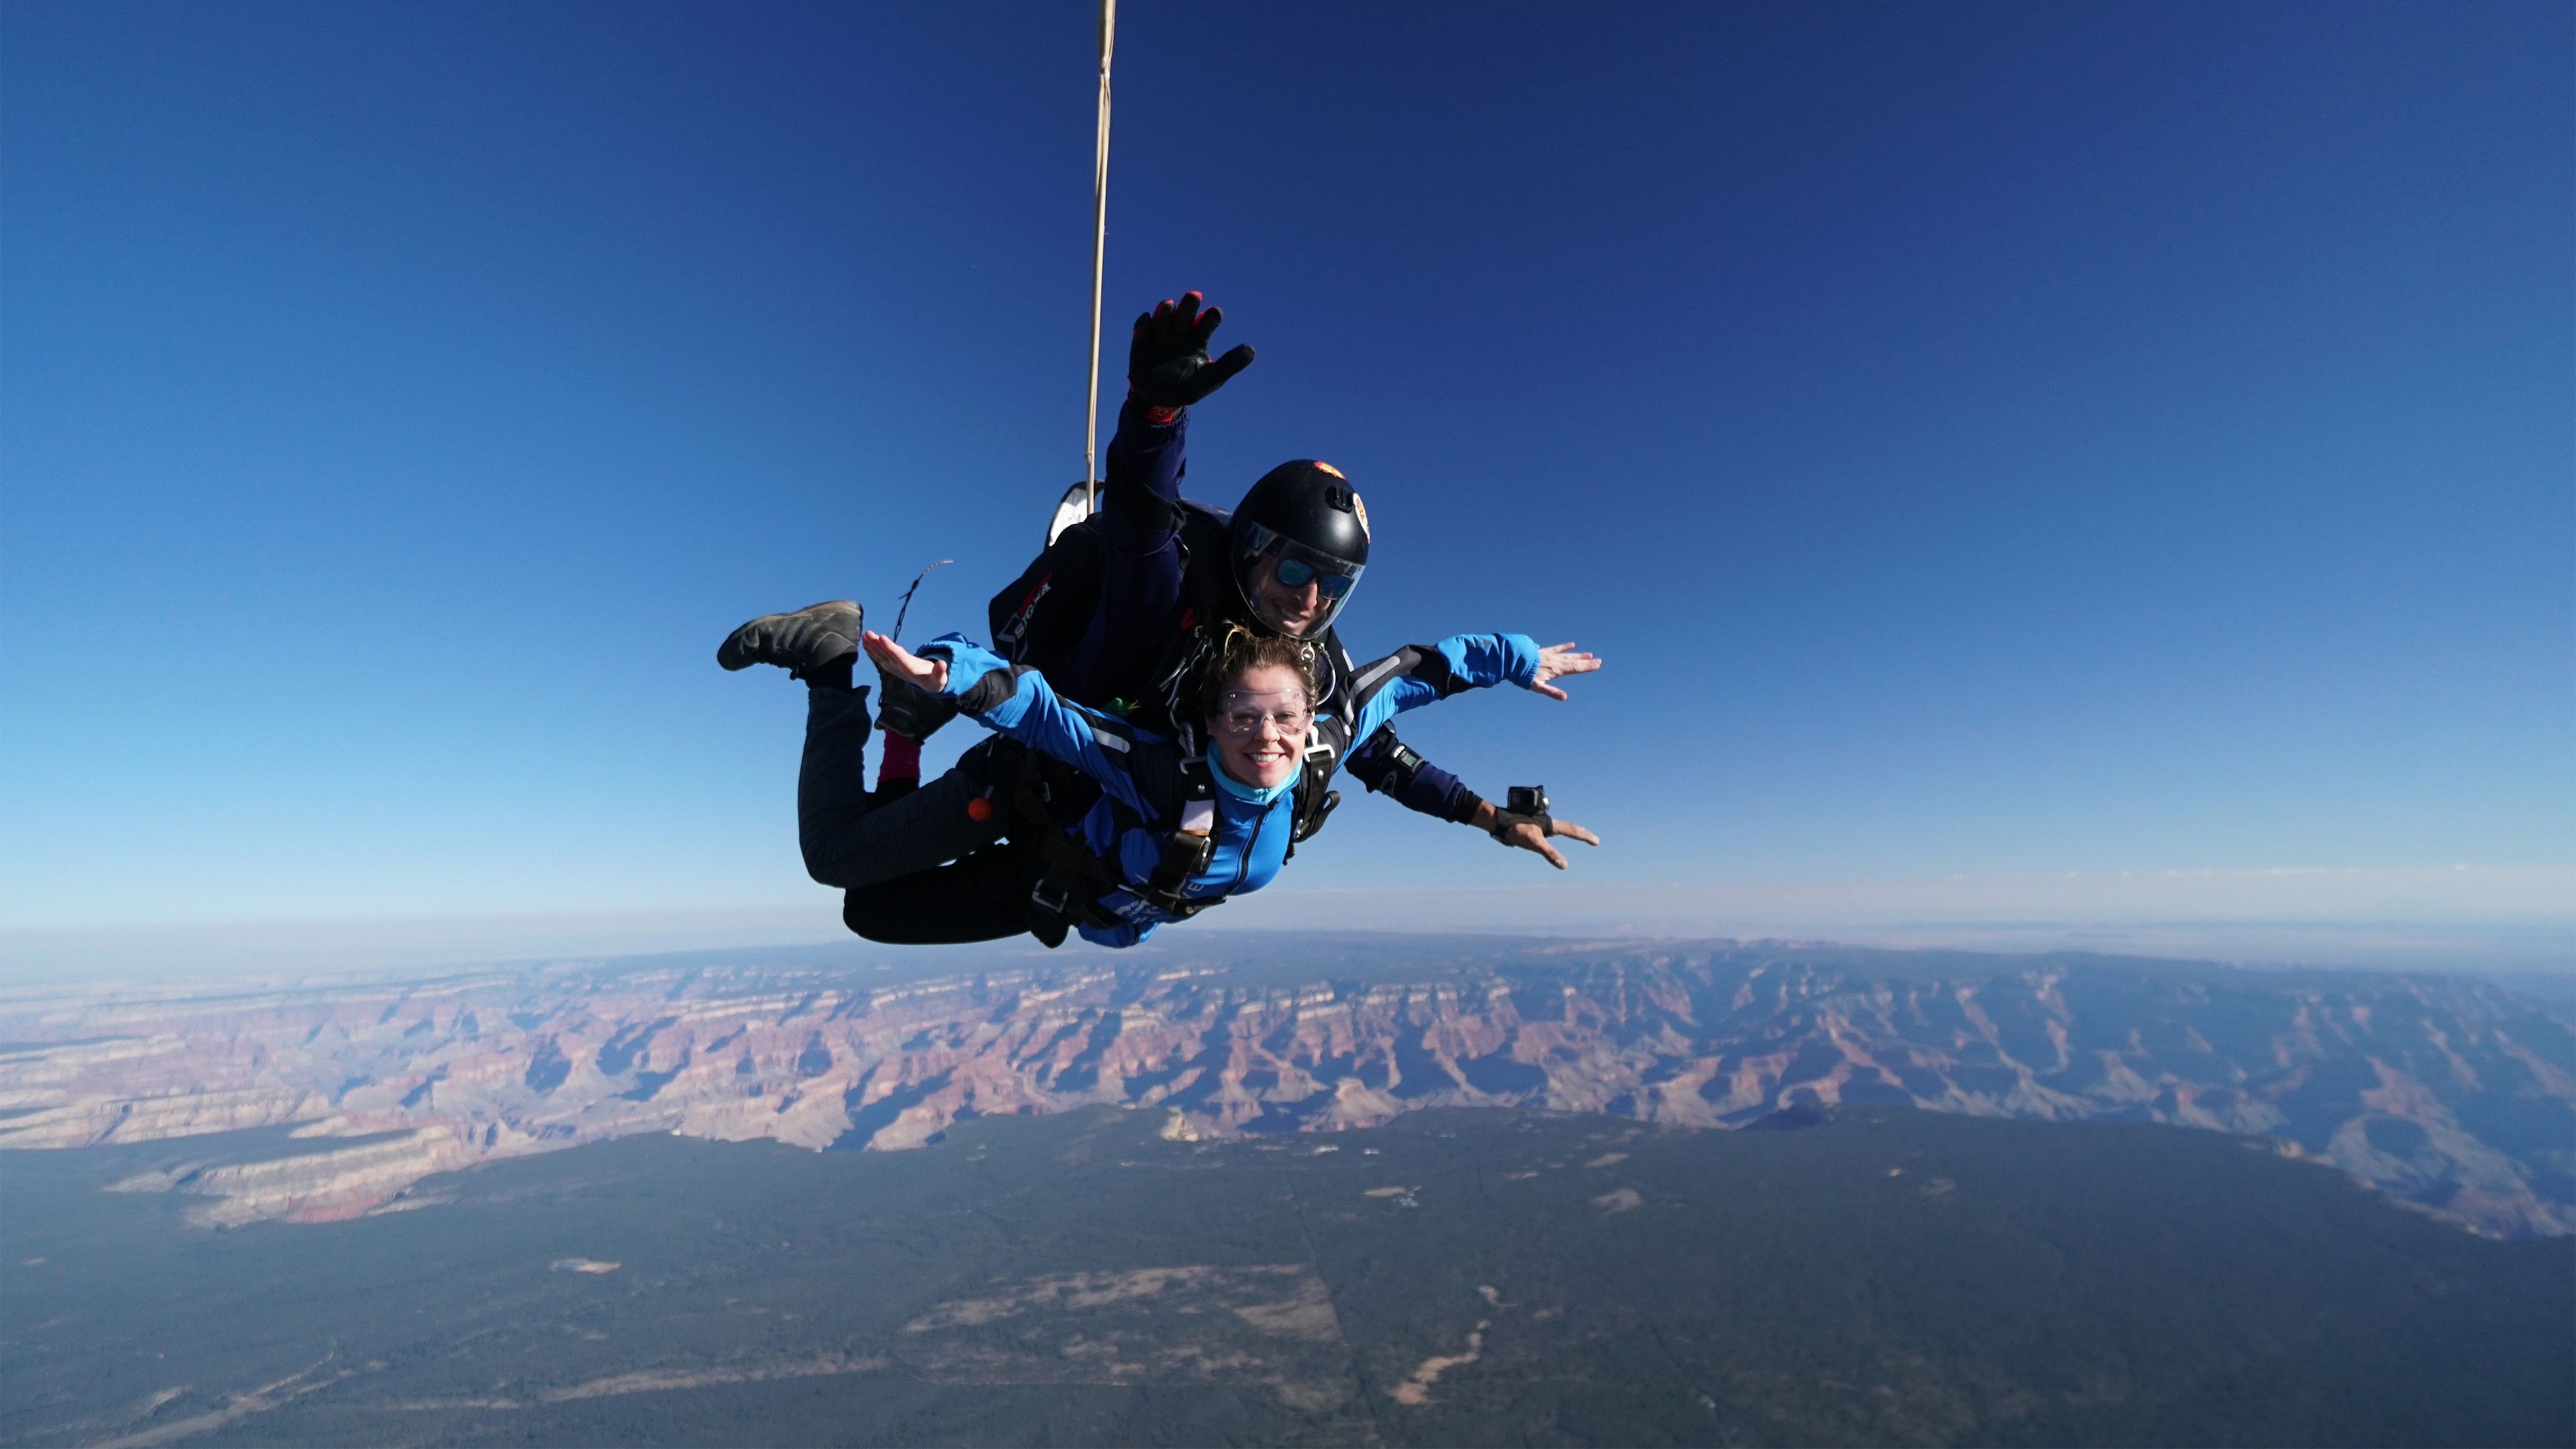 Tandem skydiving over the Grand Canyon